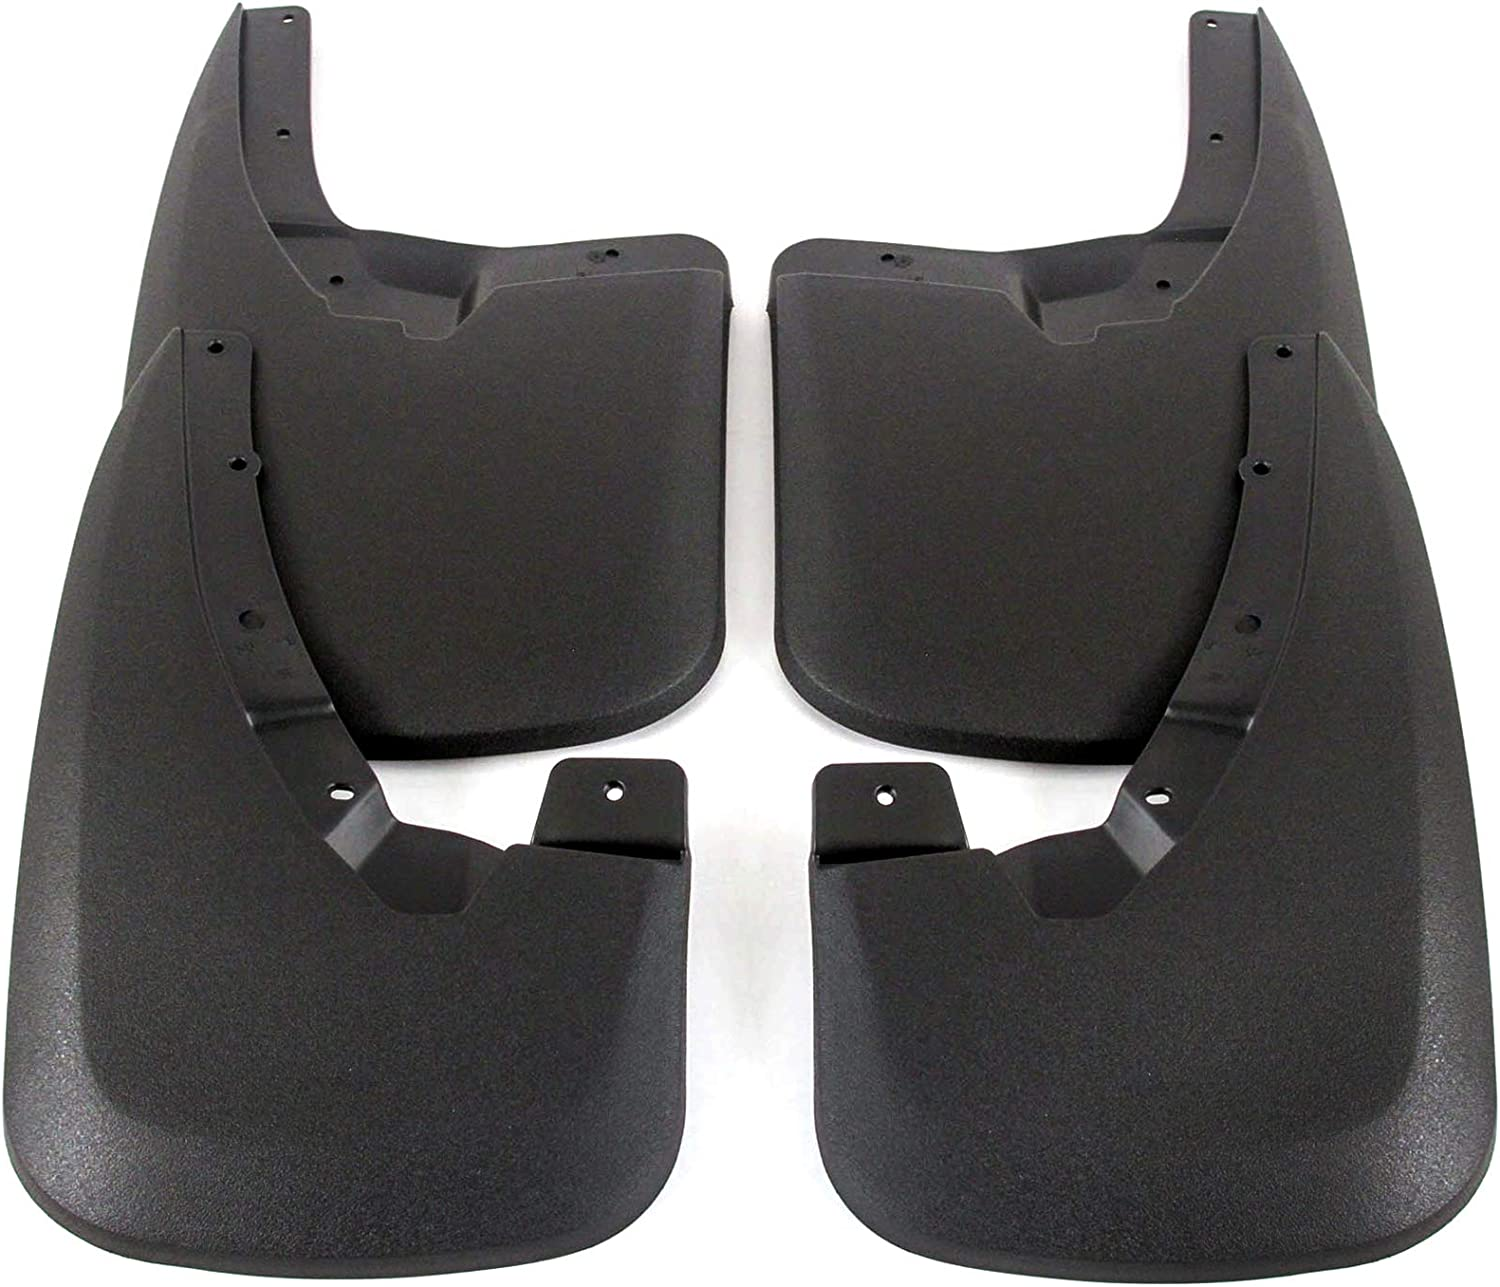 Husky Liners Front /& Rear Mud Guards Fits 09-18 Ram 1500 WITH OEM Fender Flares,